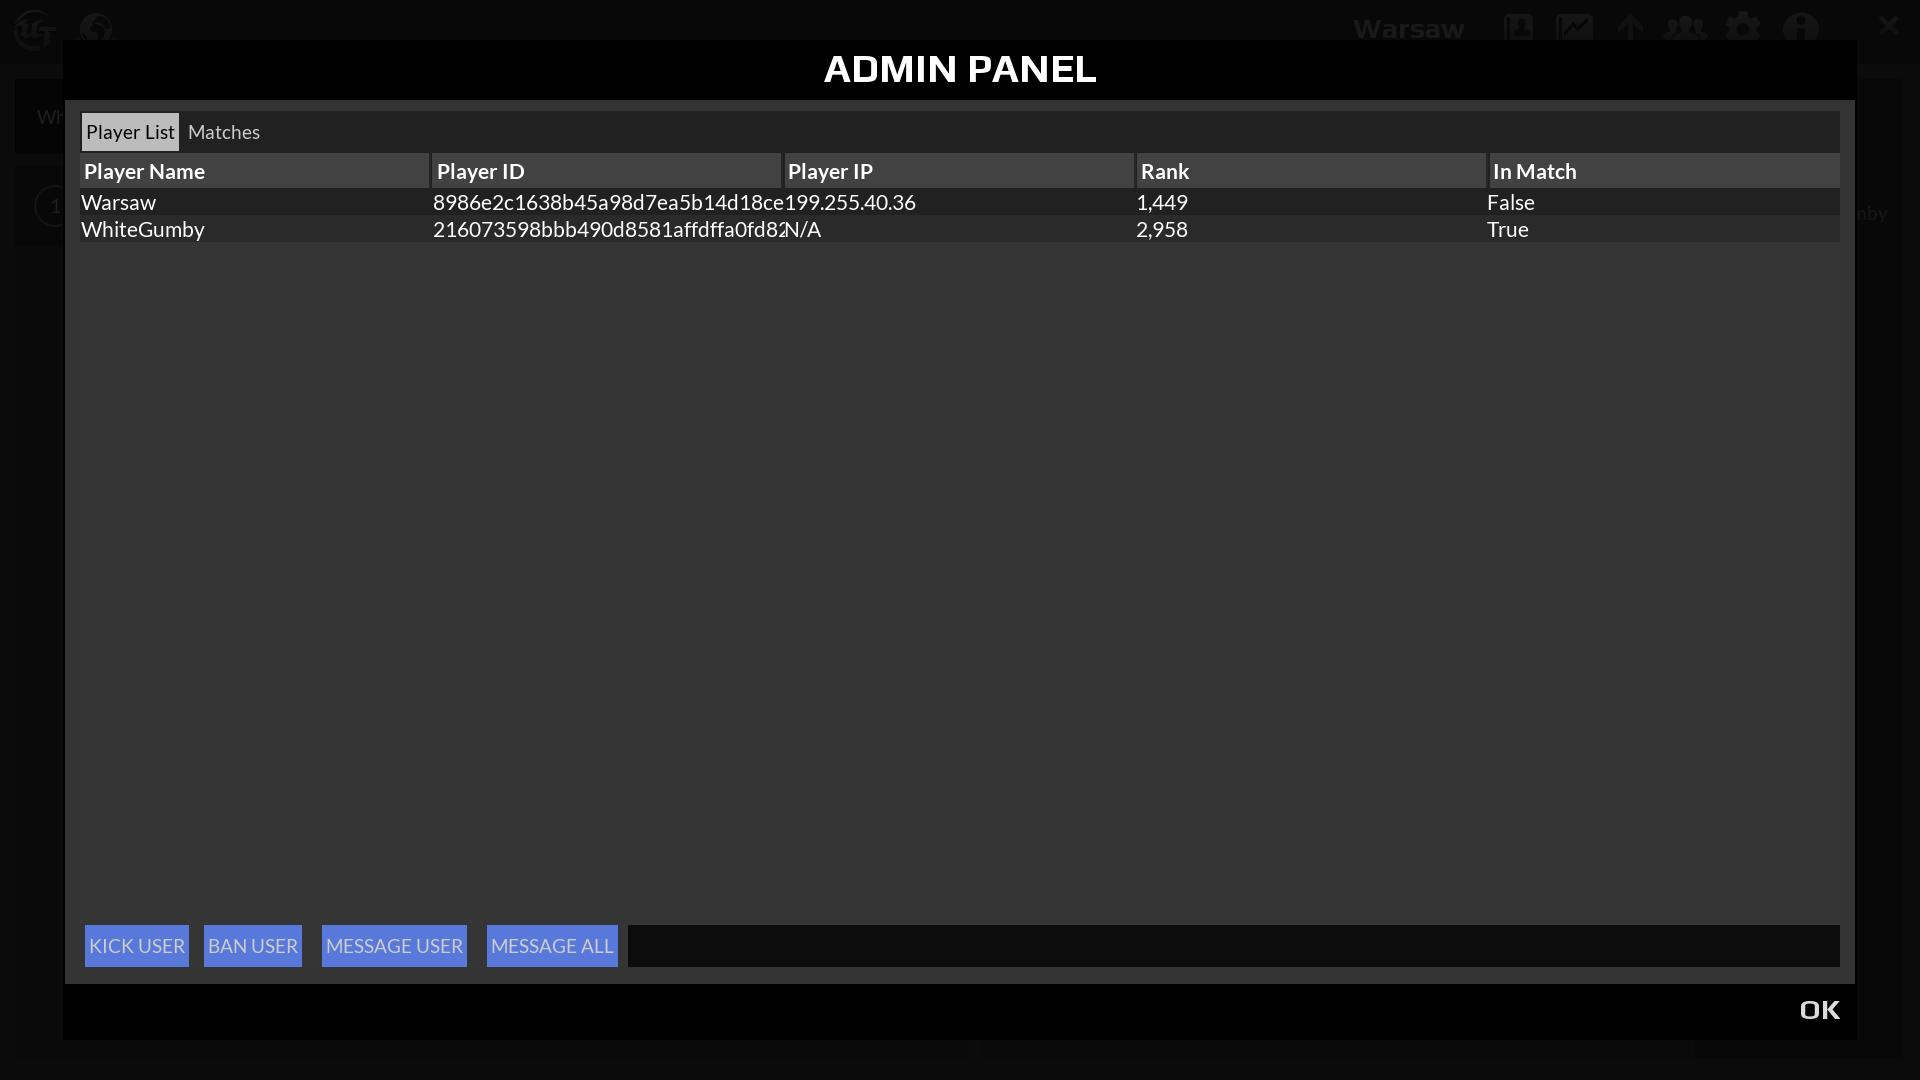 https://cdn2.unrealengine.com/UnrealTournamentBlog/oct_2015/oct21_2015/PlayerListAdminPanel-1920x1080-295702505.jpg